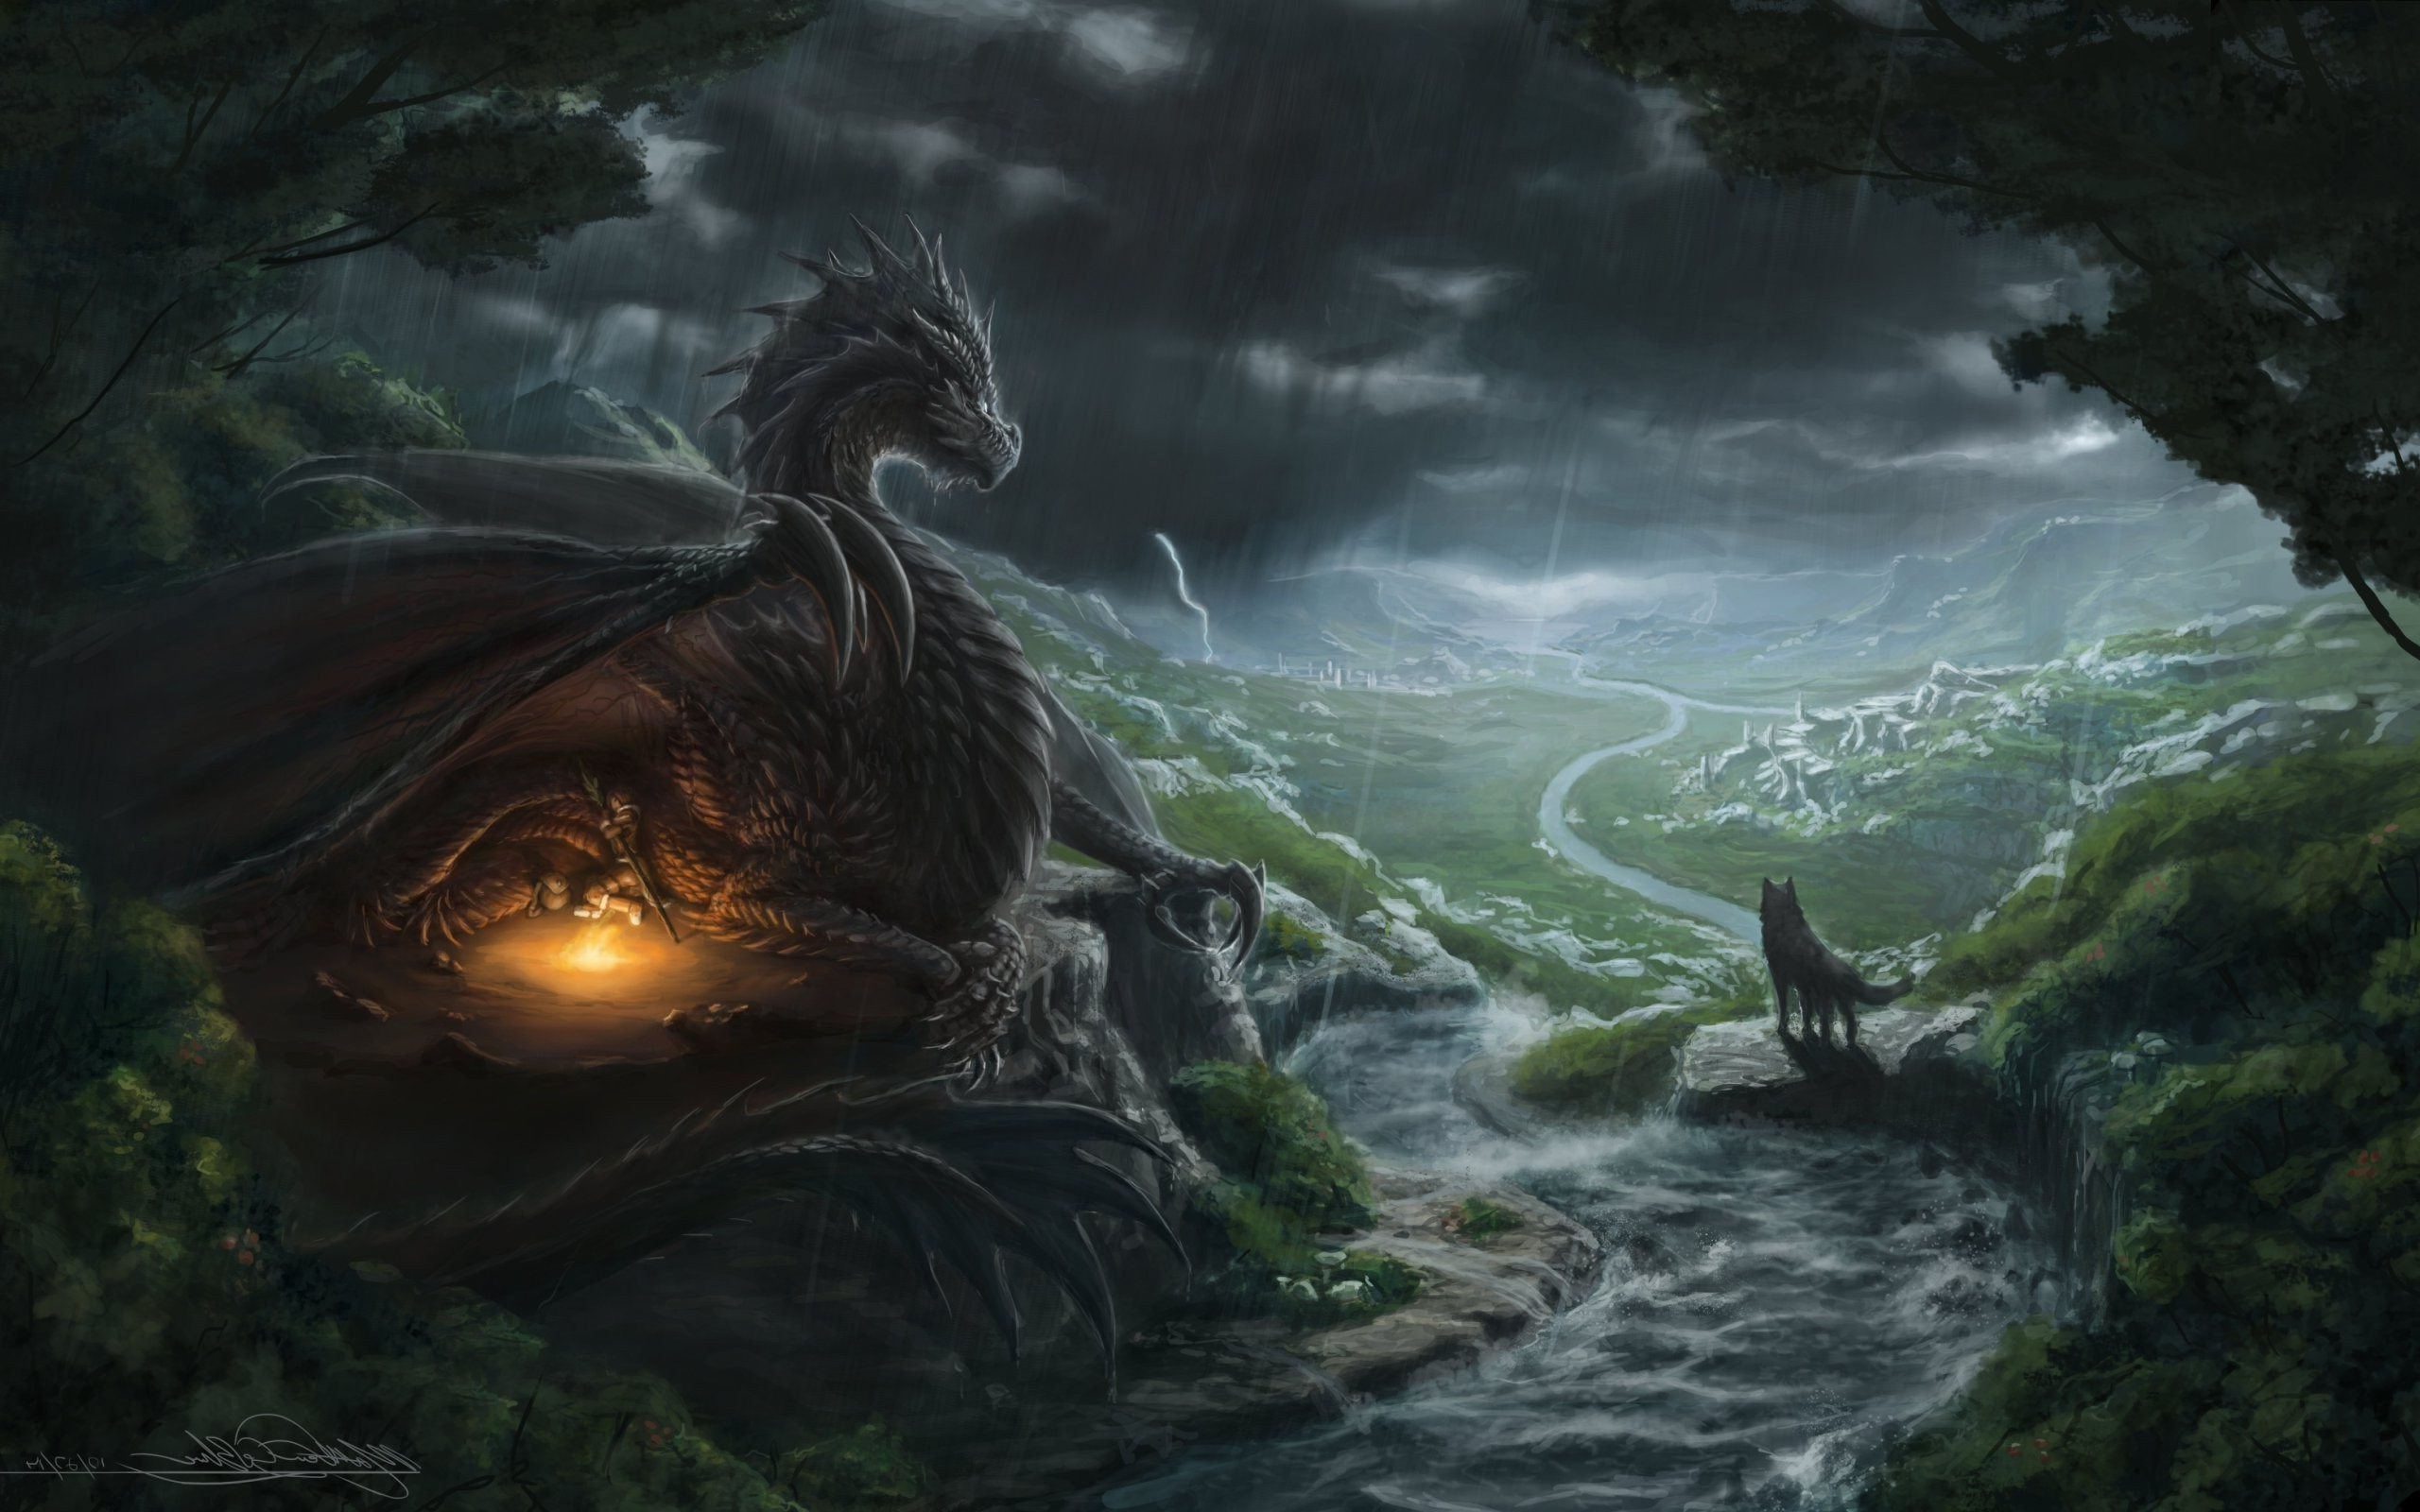 Desktop background 1366x768 73 images - Dragon wallpaper hd for pc ...